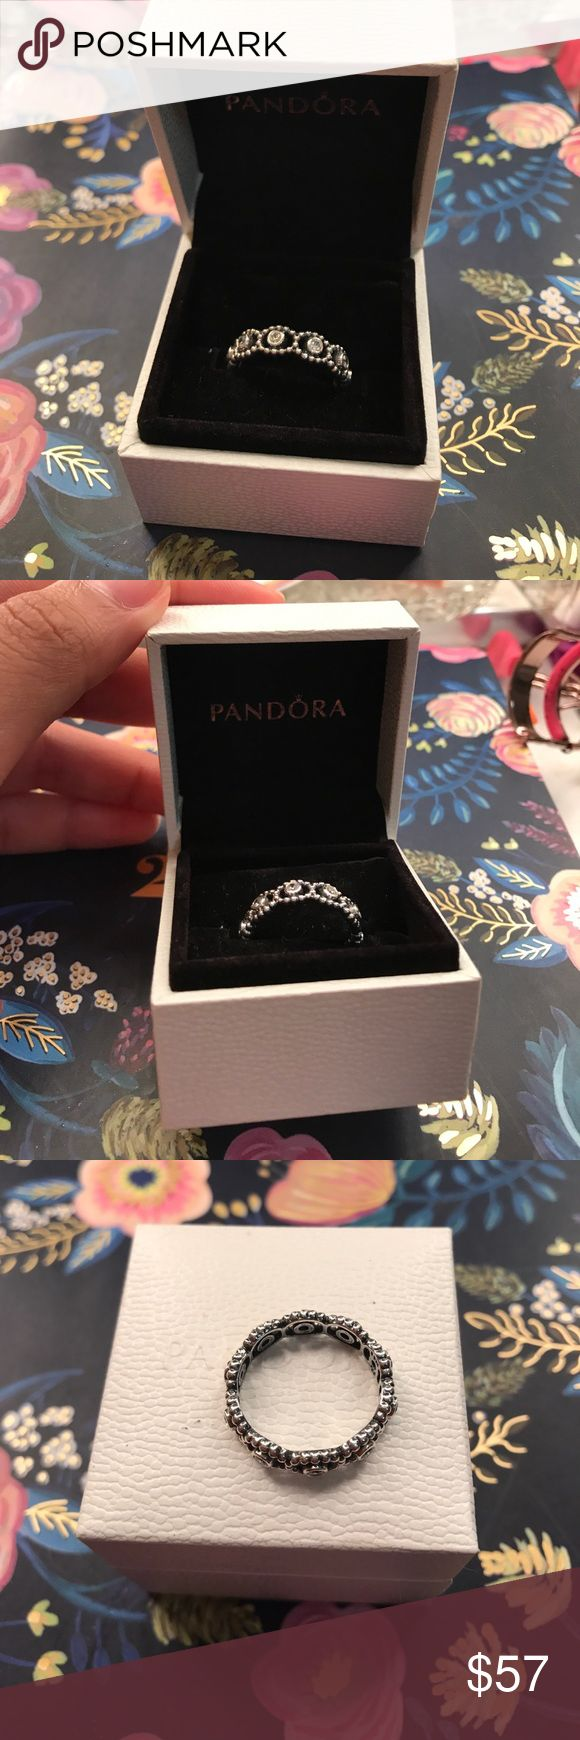 """Pandora Ring - Silver """"Her Majesty"""" Stackable Perfect condition! I believe this is a size 7. fits my middle, thumb & pointy finger! i will ship asap. price is firm! Pandora Jewelry Rings"""